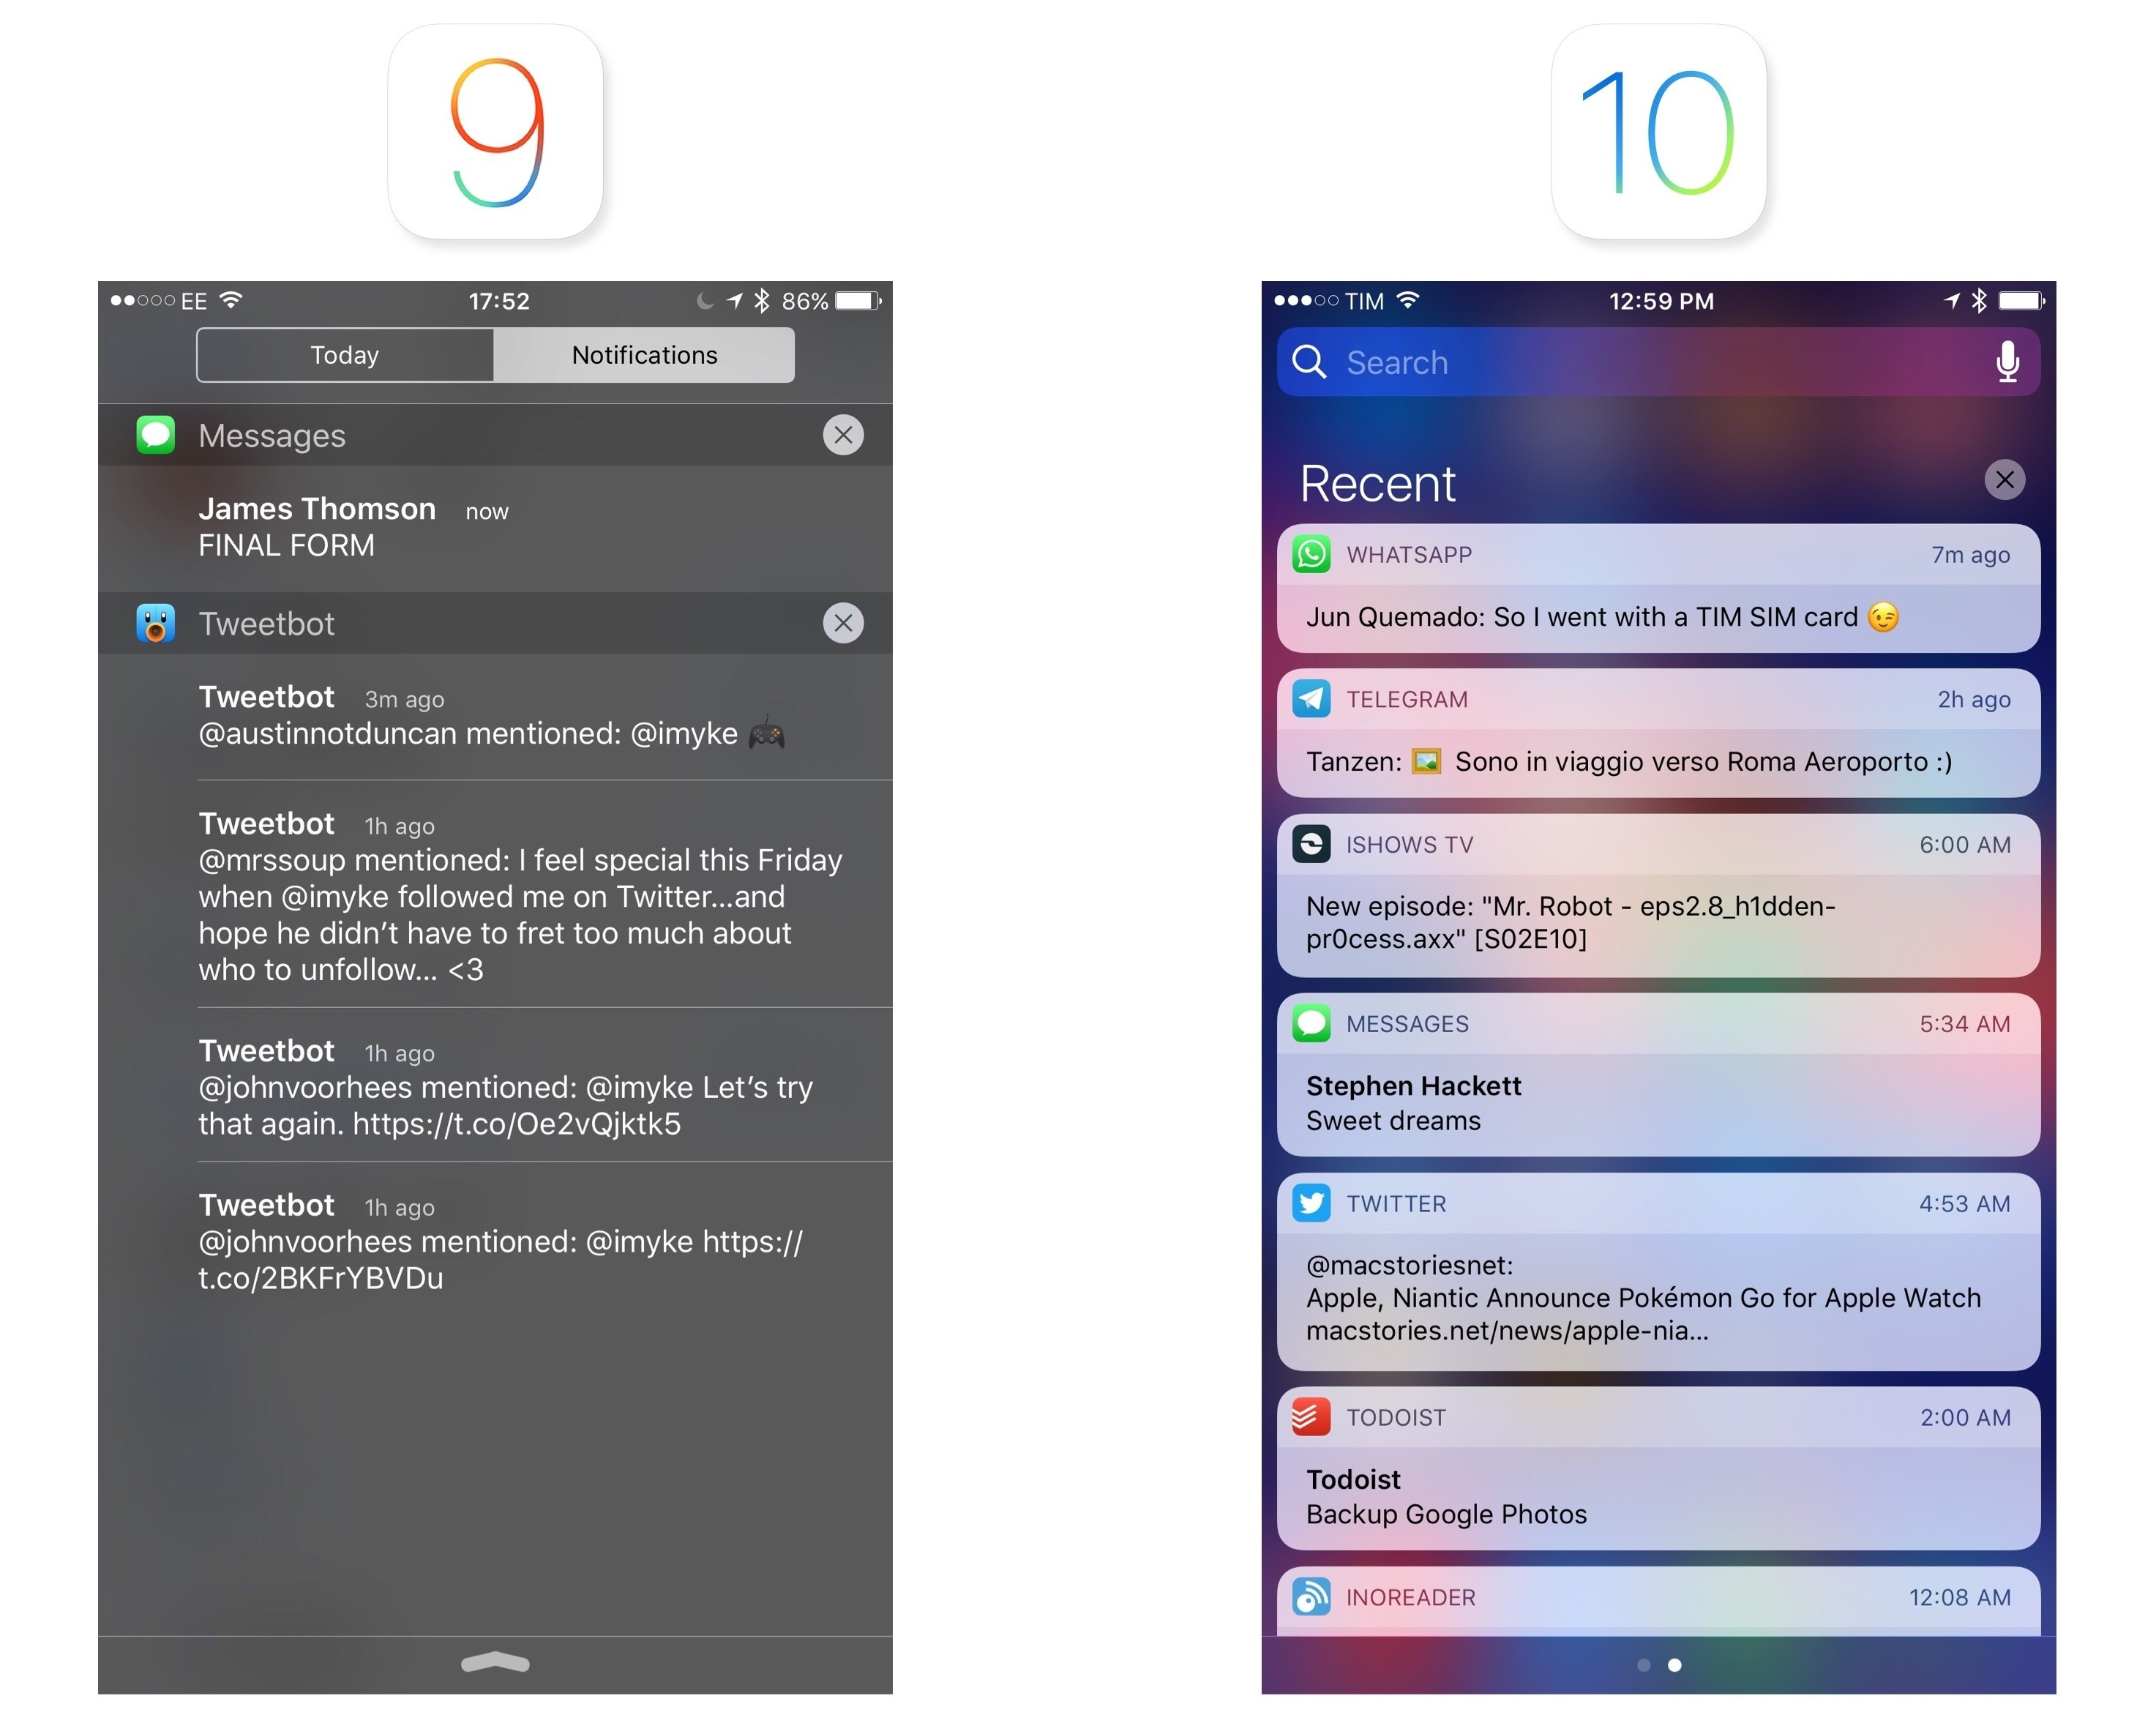 Notifications iOS 9 and 10.